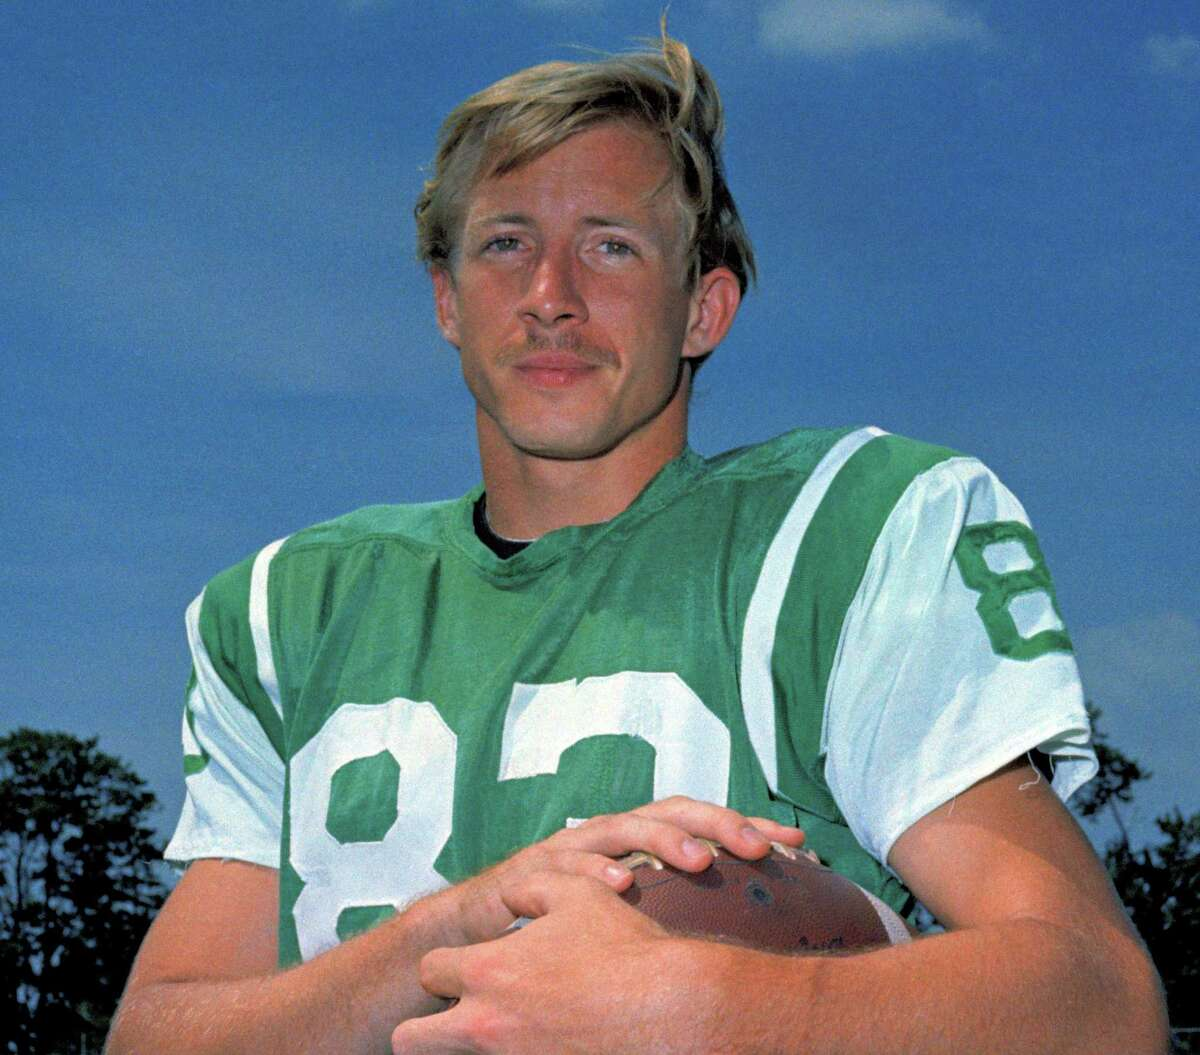 FILE - T 1969 file photo, shows New York Jets wide receiver George Sauer. Sauer, a member of the Jets' only Super Bowl championship team, died Tuesday, May 7, 2013, after a long struggle with Alzheimer's disease, the Moreland Funeral Home in Westerville, Ohio said. He was 69. (AP Photo/File)